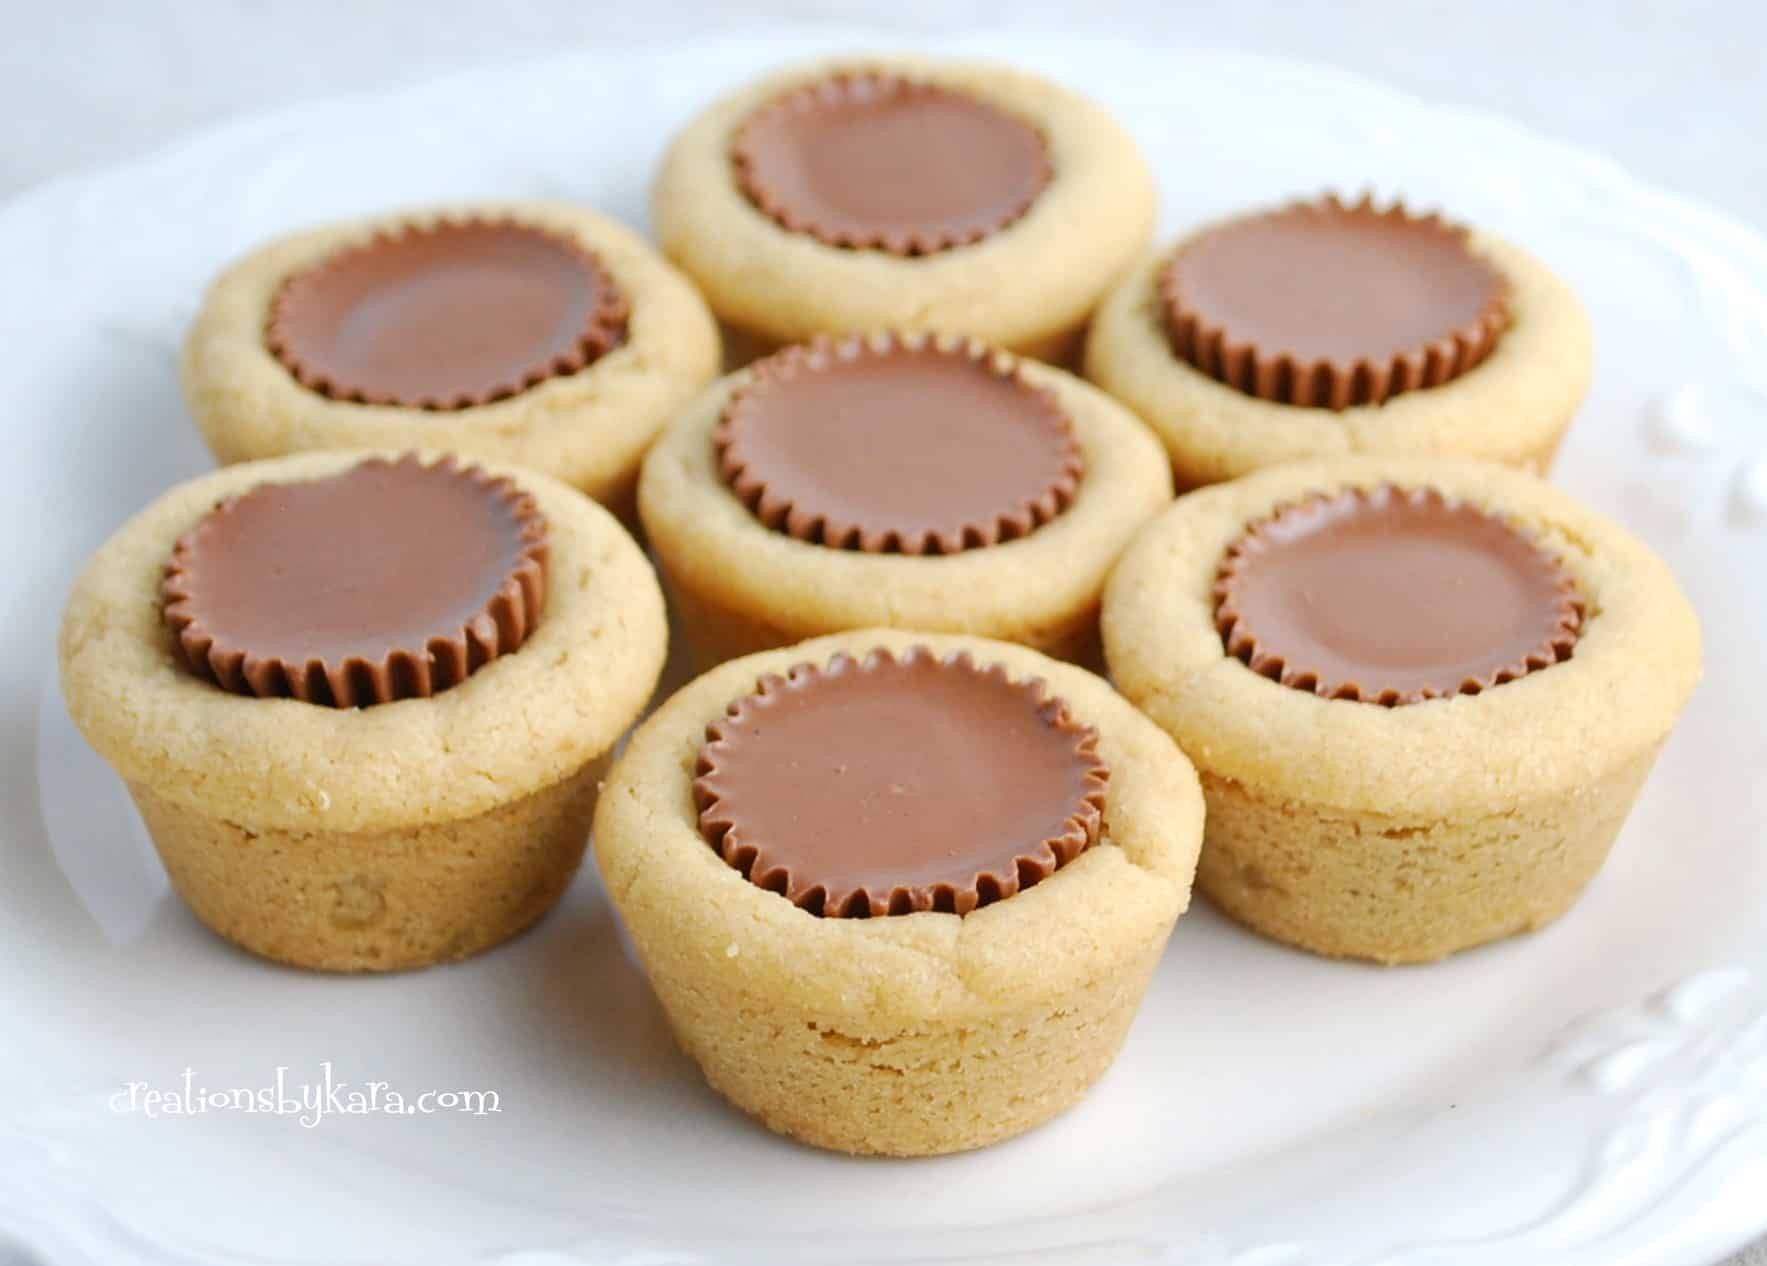 Peanut Butter Cup Cookies  Reese s Peanut Butter Cup Cookies